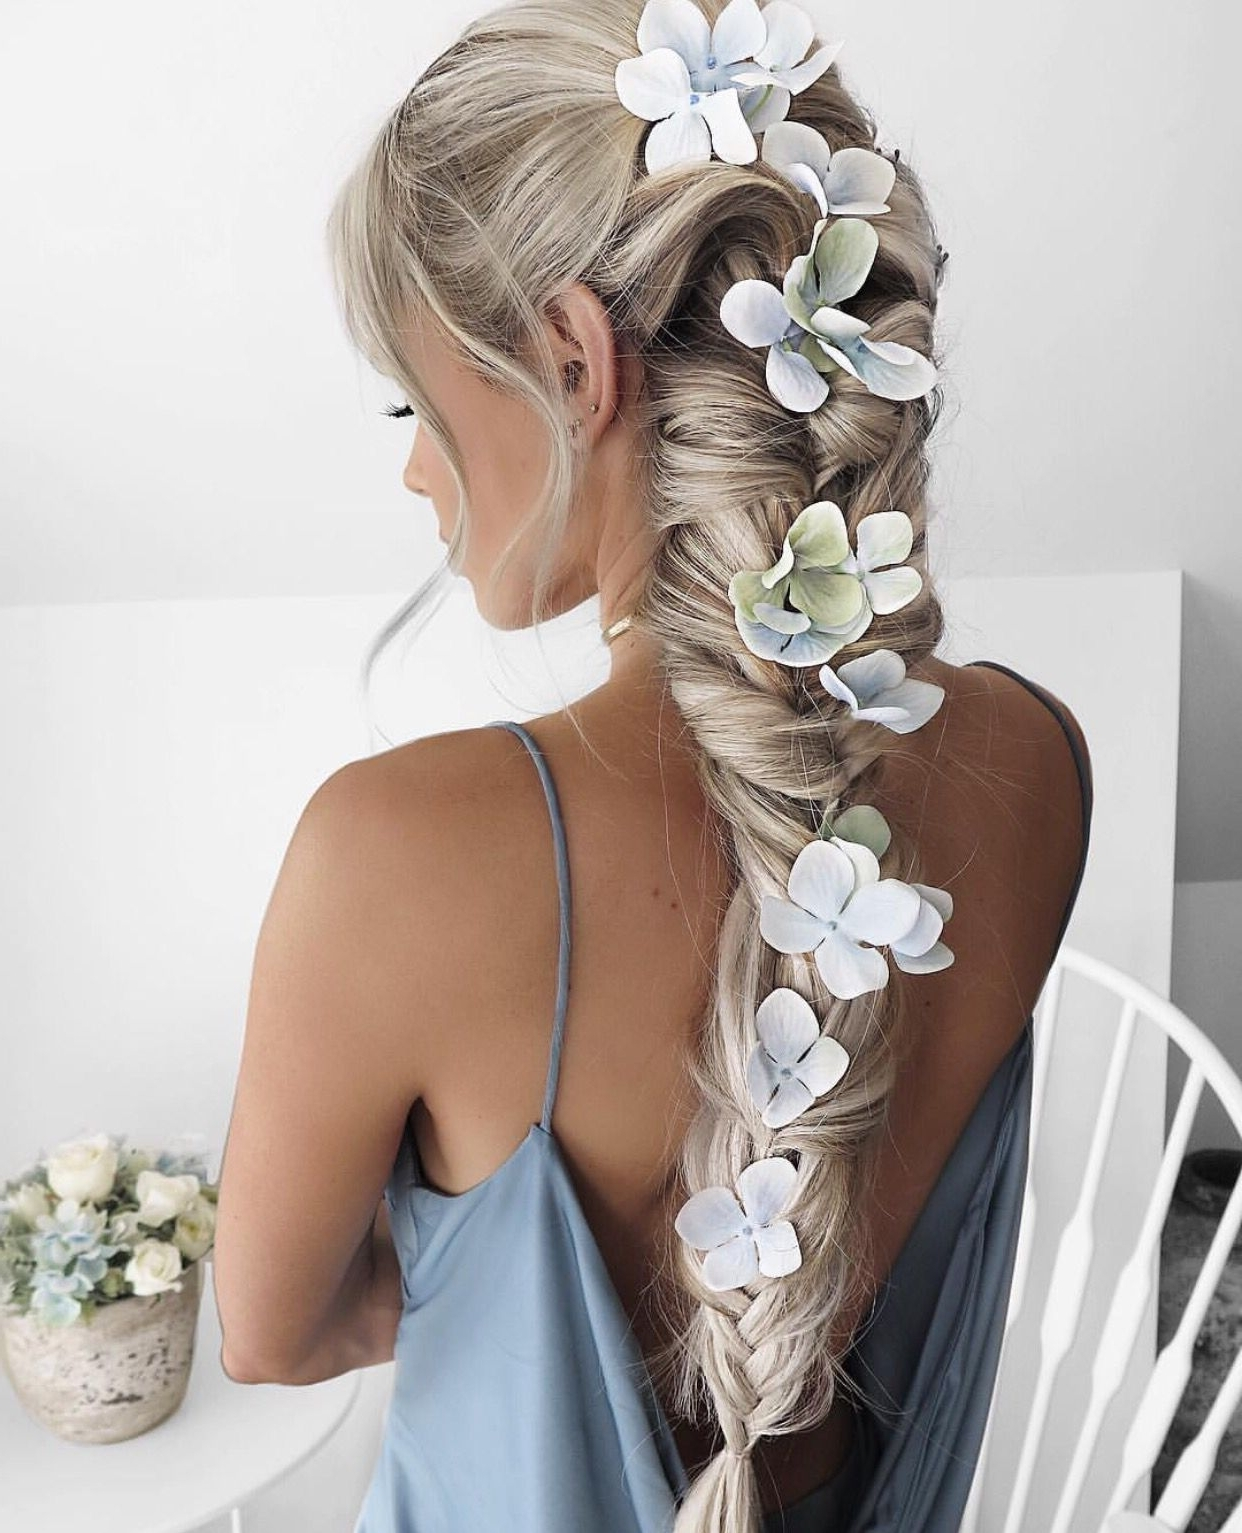 Quirky Hair Ideas. Flowers In Braid. (Gallery 3 of 15)